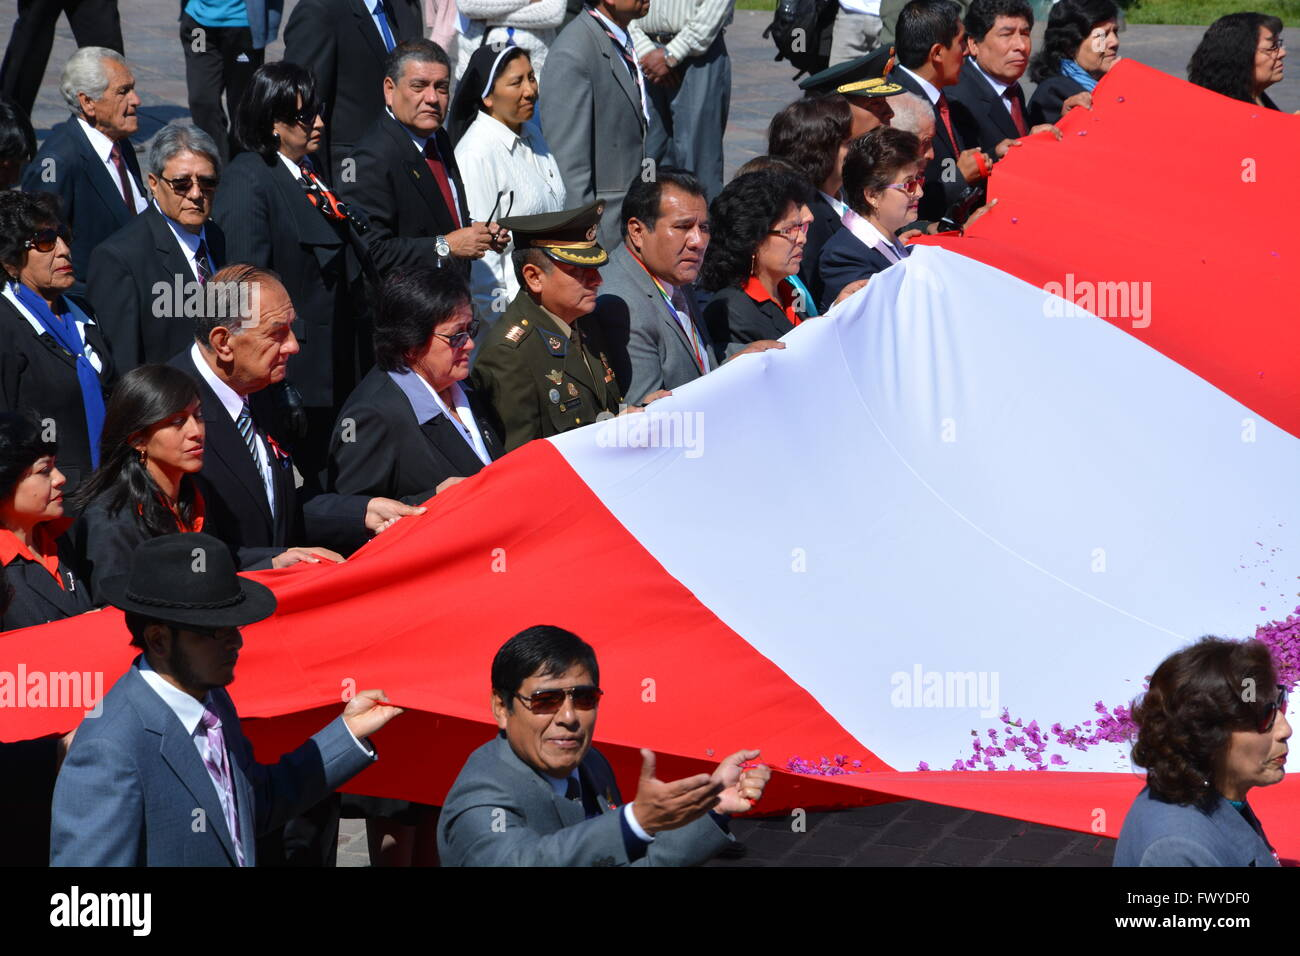 Politicians and dignitaries carry the Peruvian flag and parade around the Plaza de Armas for Dia del Folclor in - Stock Image